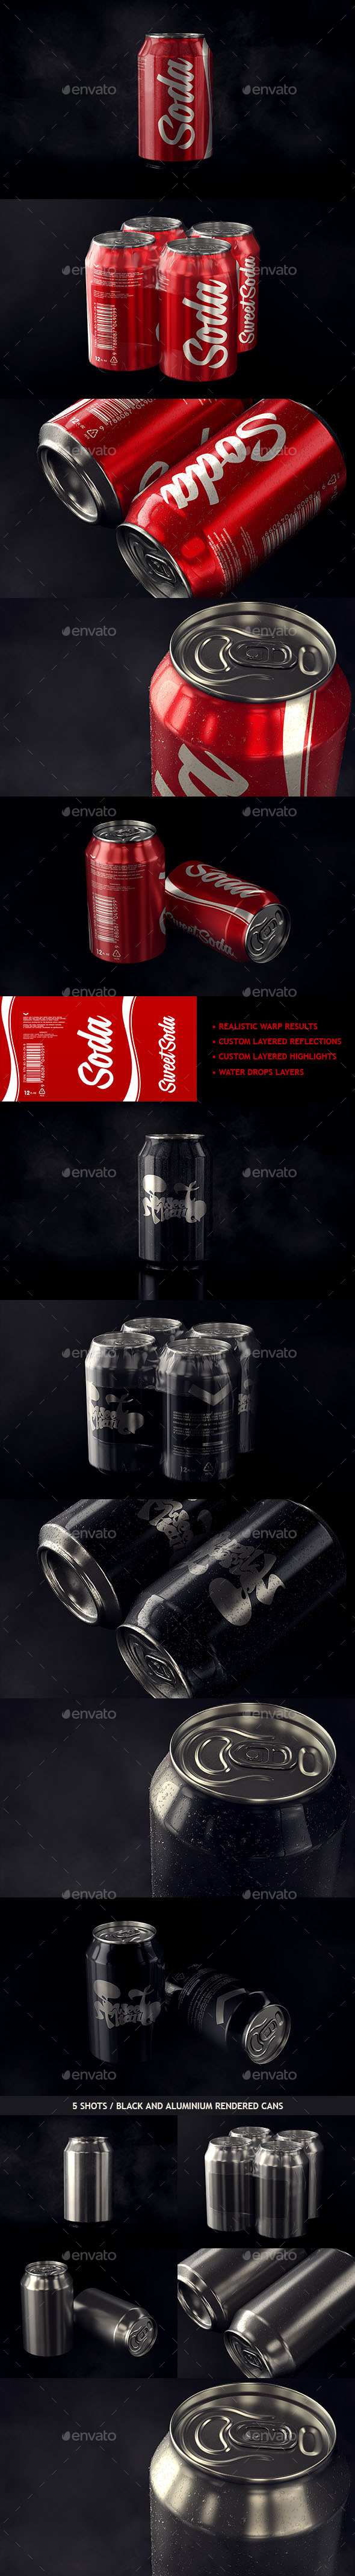 GraphicRiver Photorealistic Aluminum Soda Can Mockup 9810580